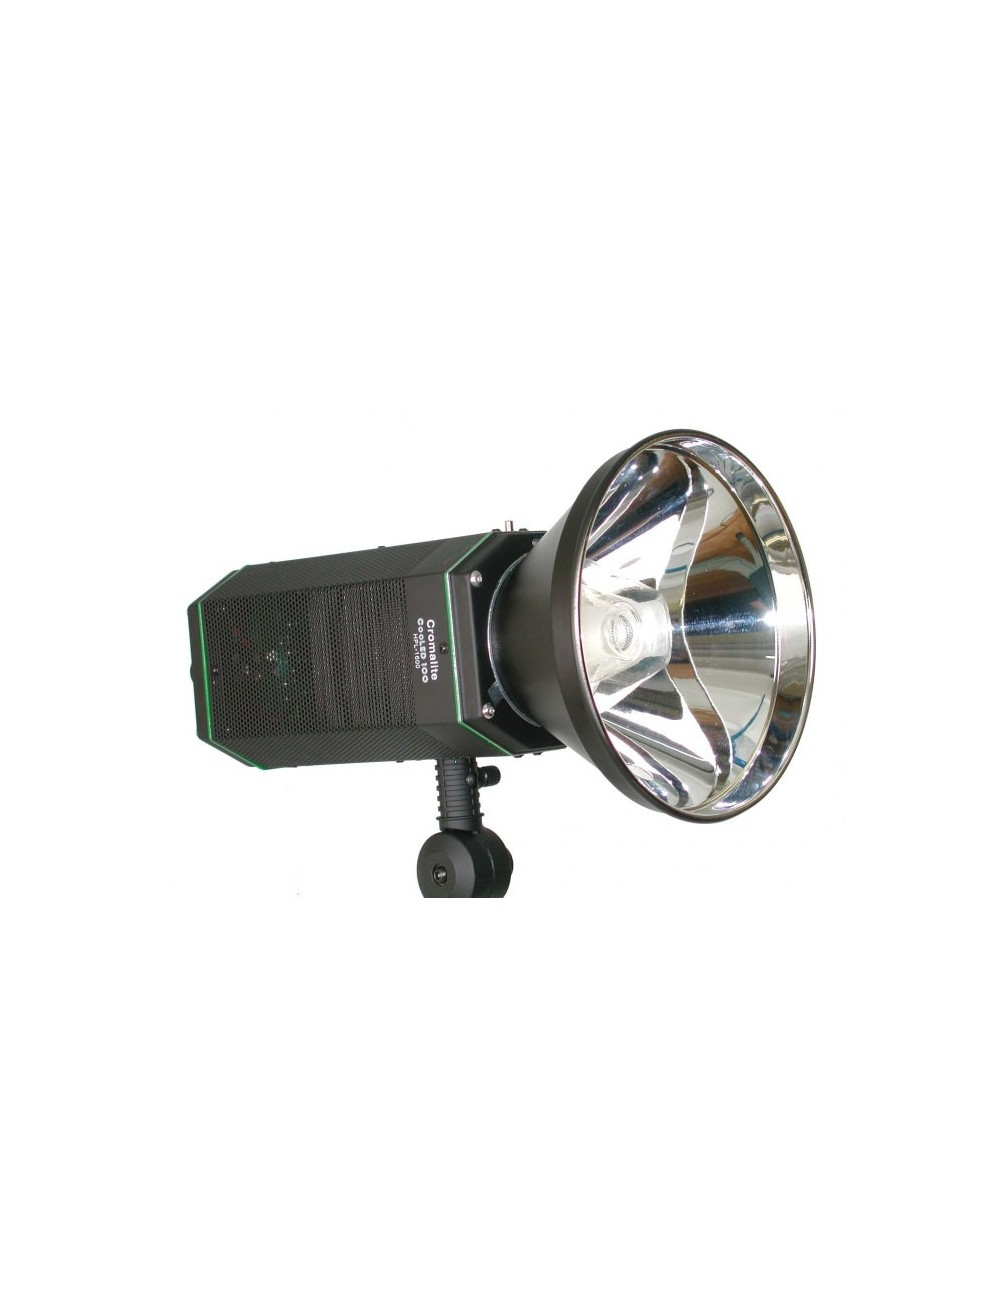 Foco LED Studio Cooled HPL1600-100